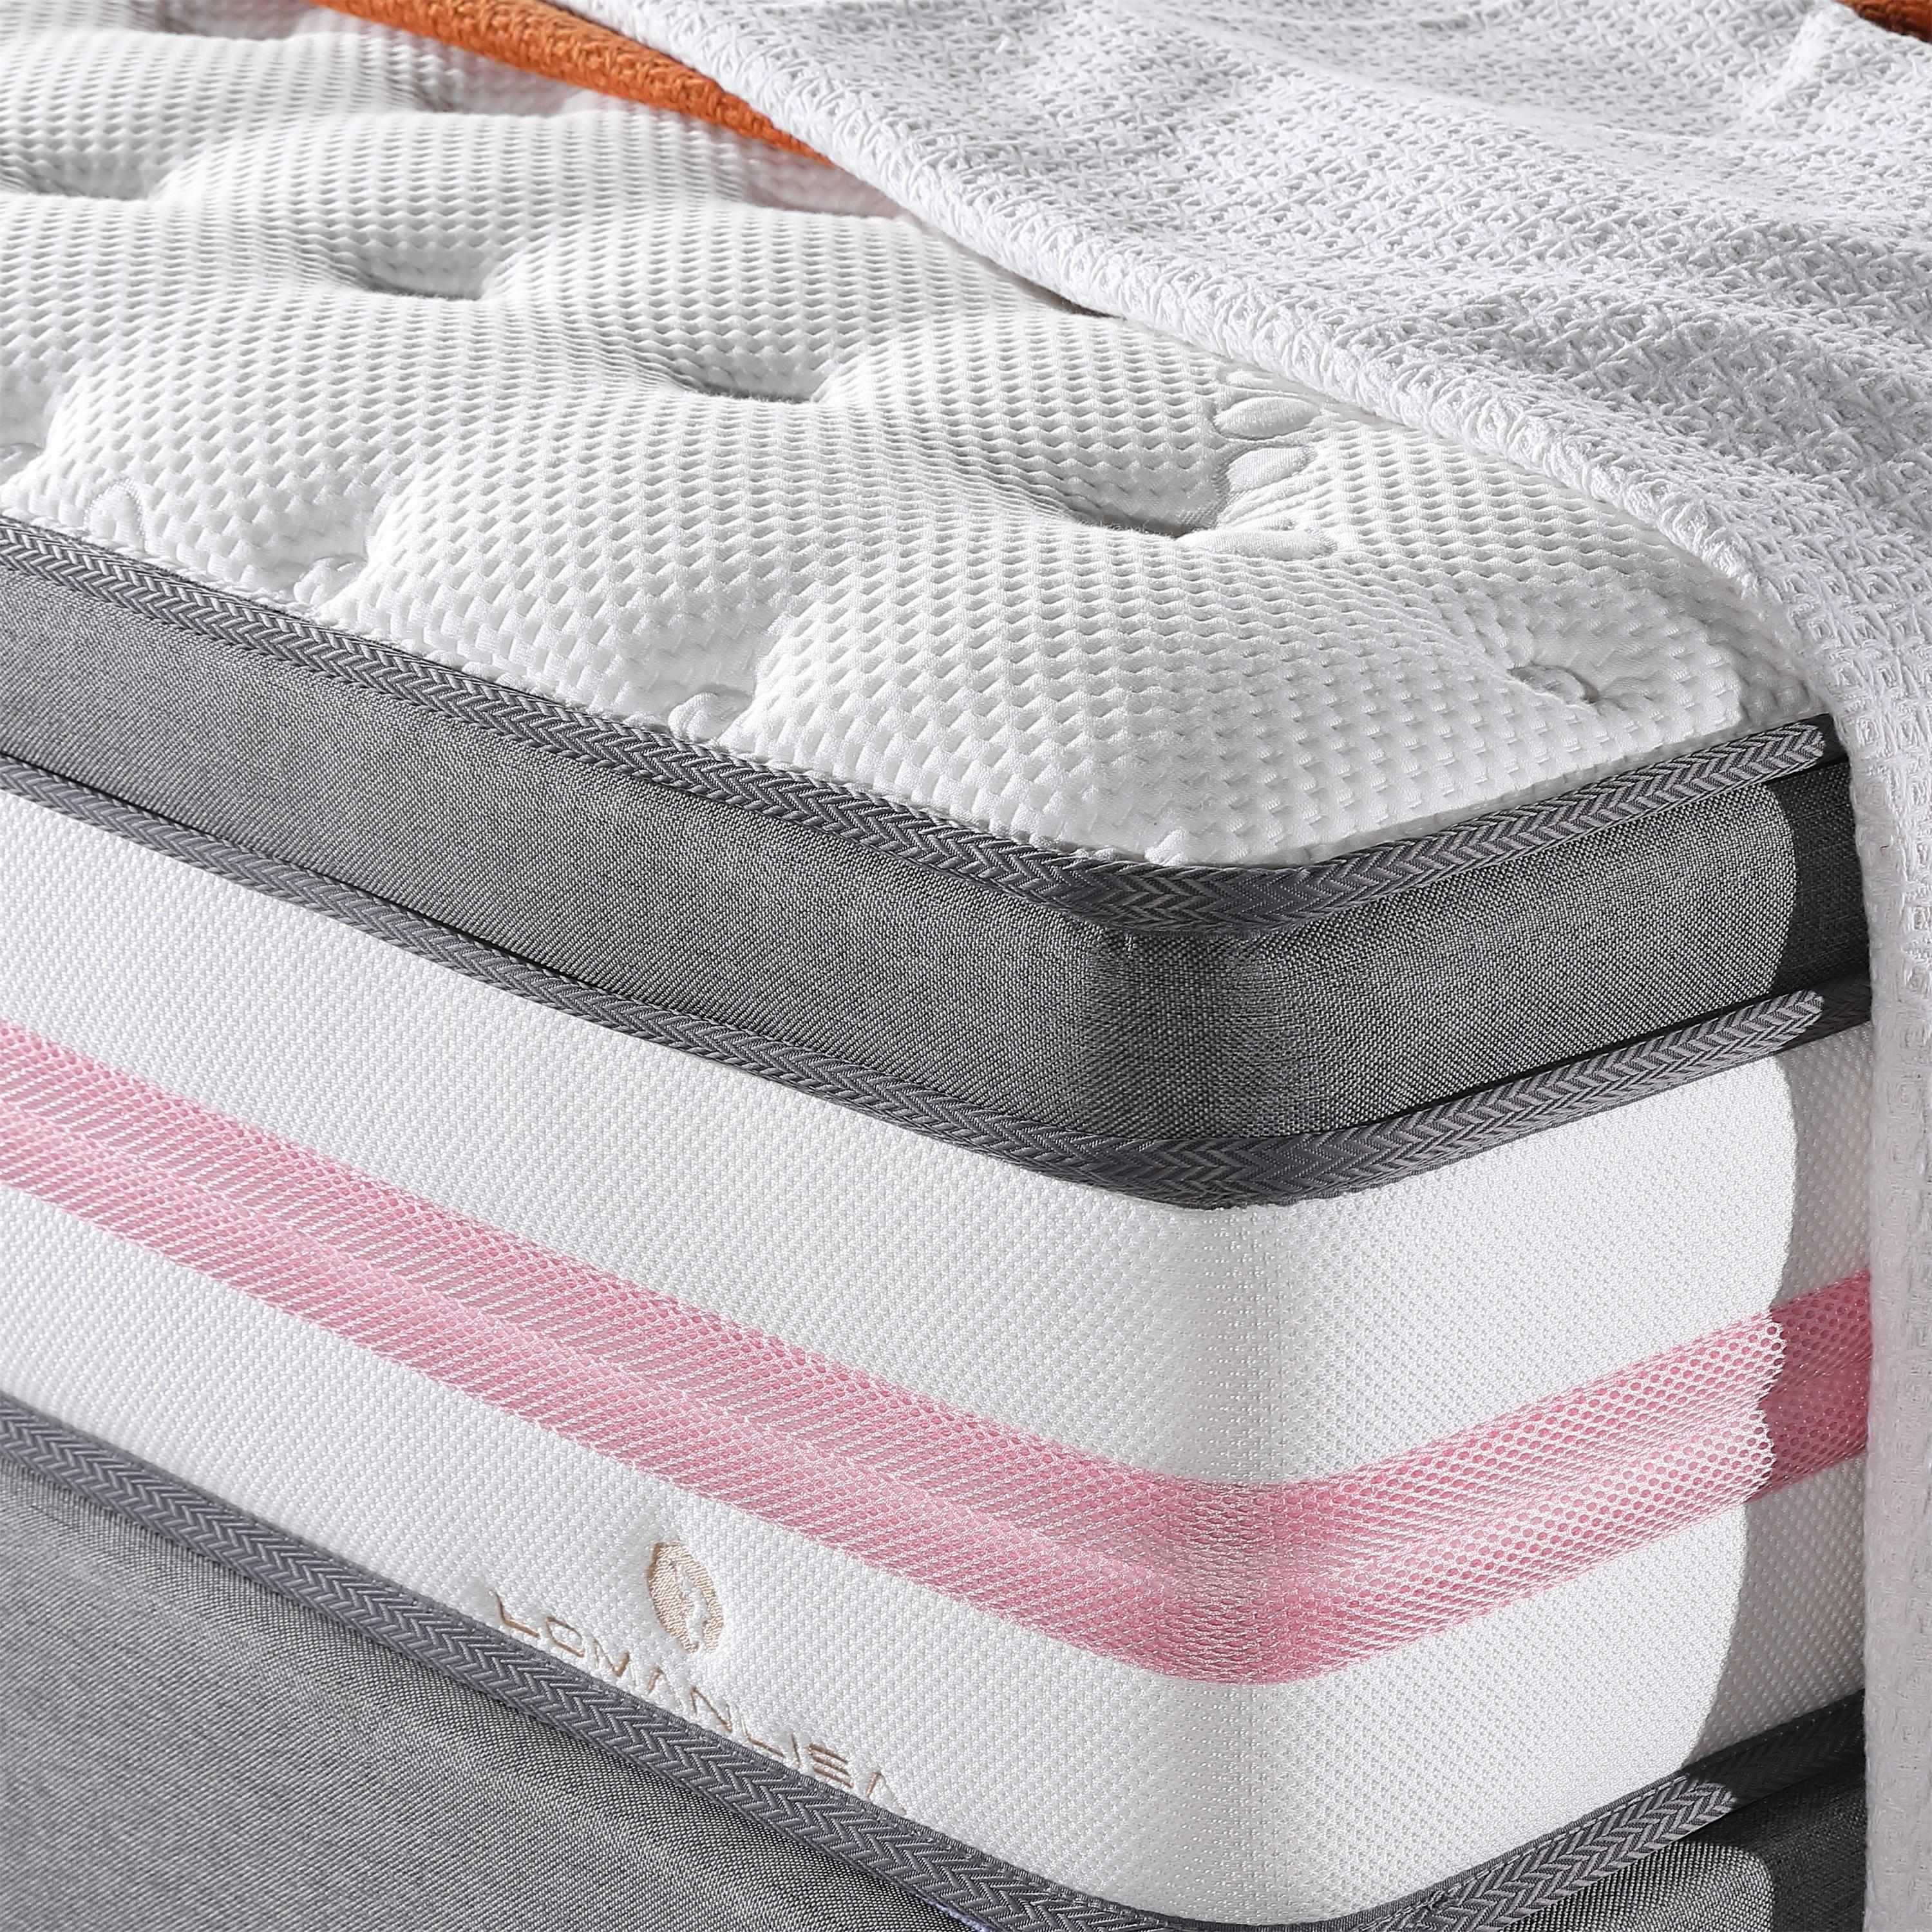 JLH Euro Top Design Princess Pink 5 Zoned Wool Darcon Foam Pocket Spring Mattress with Anti-Mite Function Hybrid Mattress image2